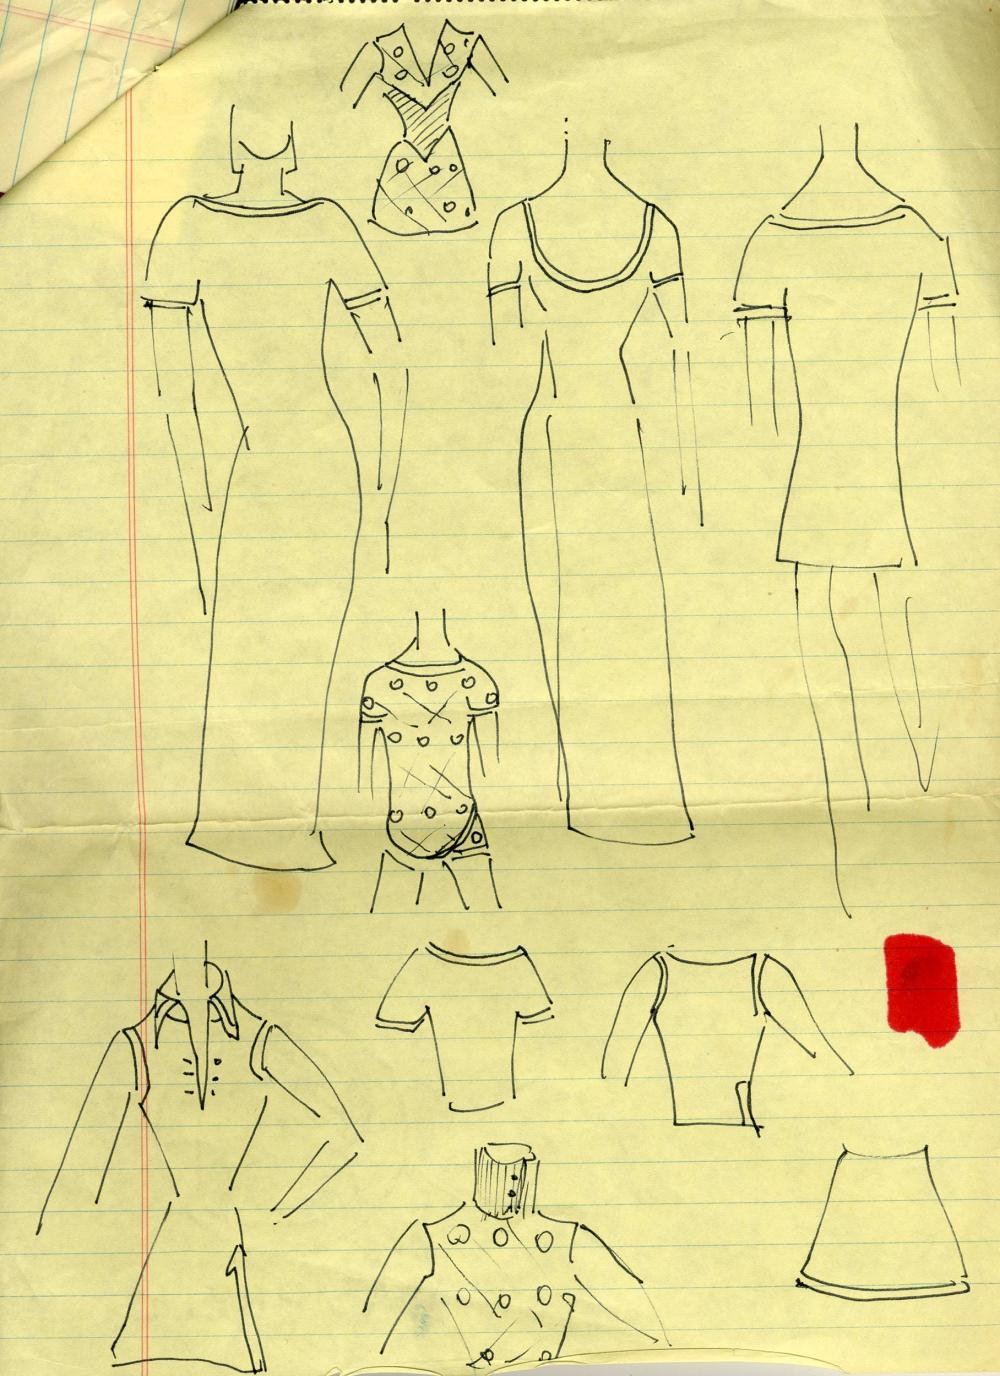 Oleg Cassini, Jackie Kennedy's Favorite Fashion Designer, Handwritten Notes & Sketches for the